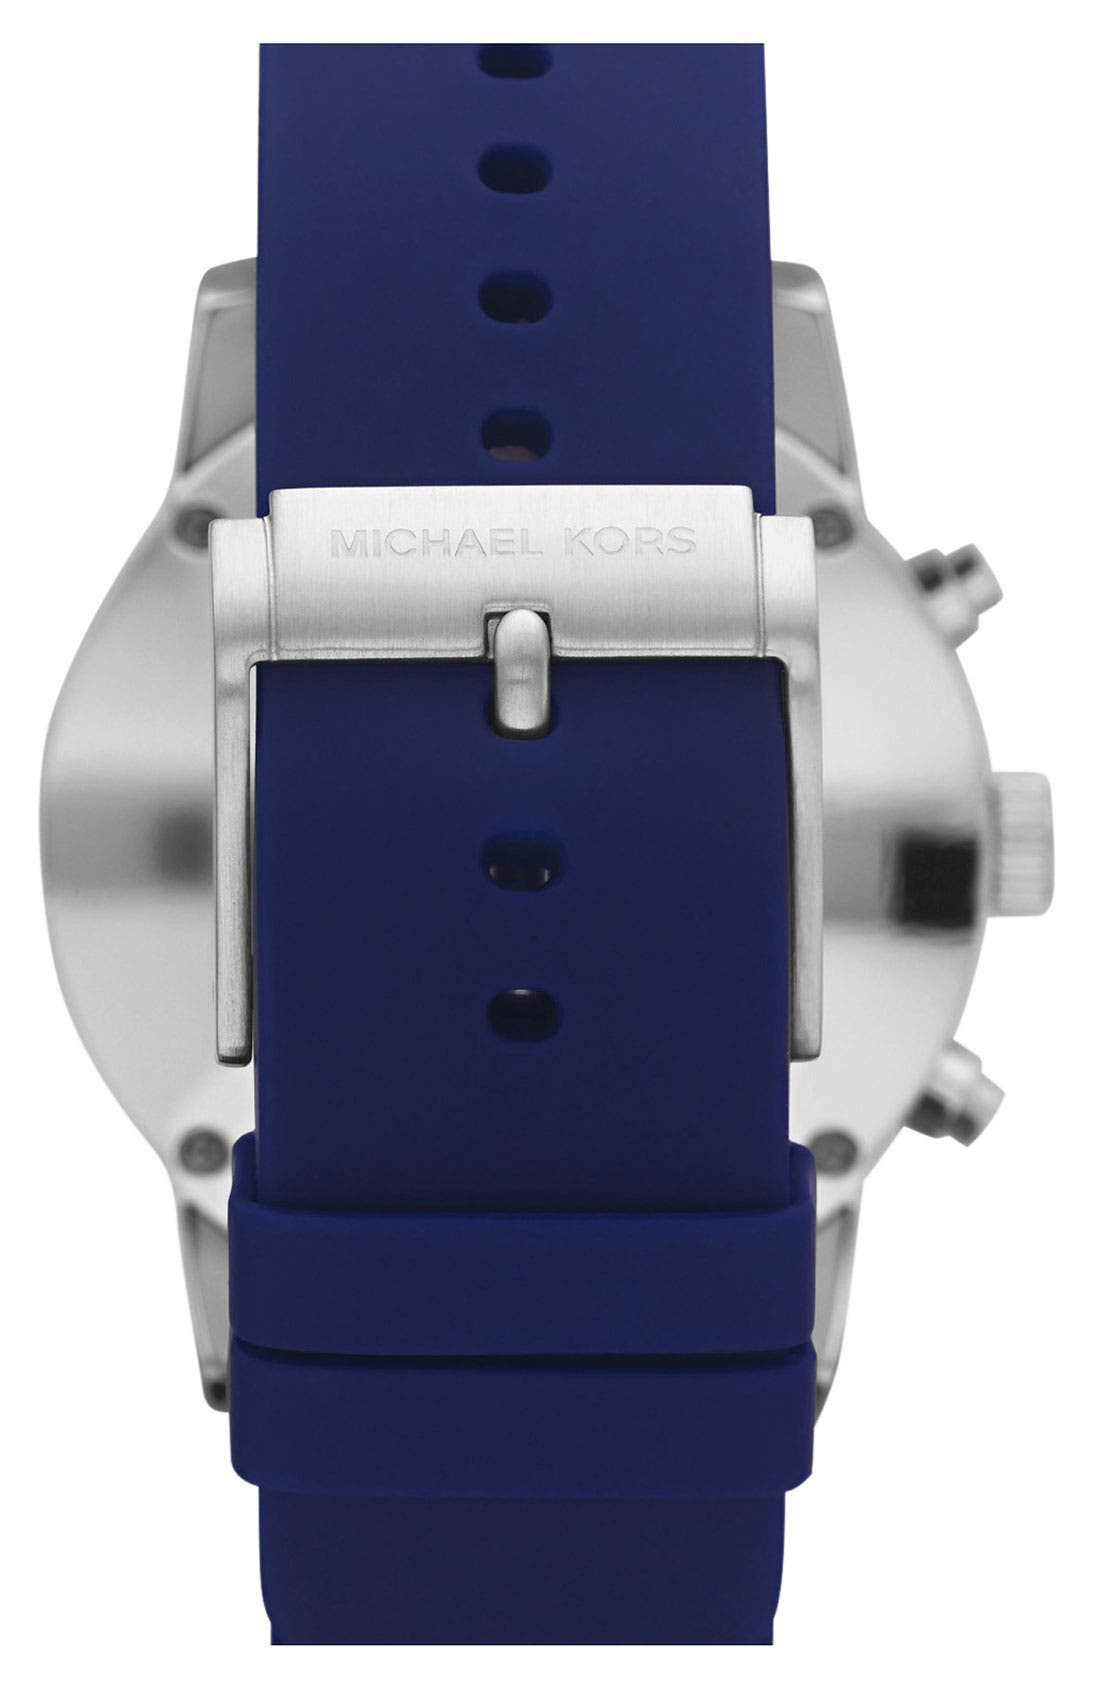 Michael Kors 'Scout' Chronograph Silicone Strap Watch, 43mm,                             Alternate thumbnail 11, color,